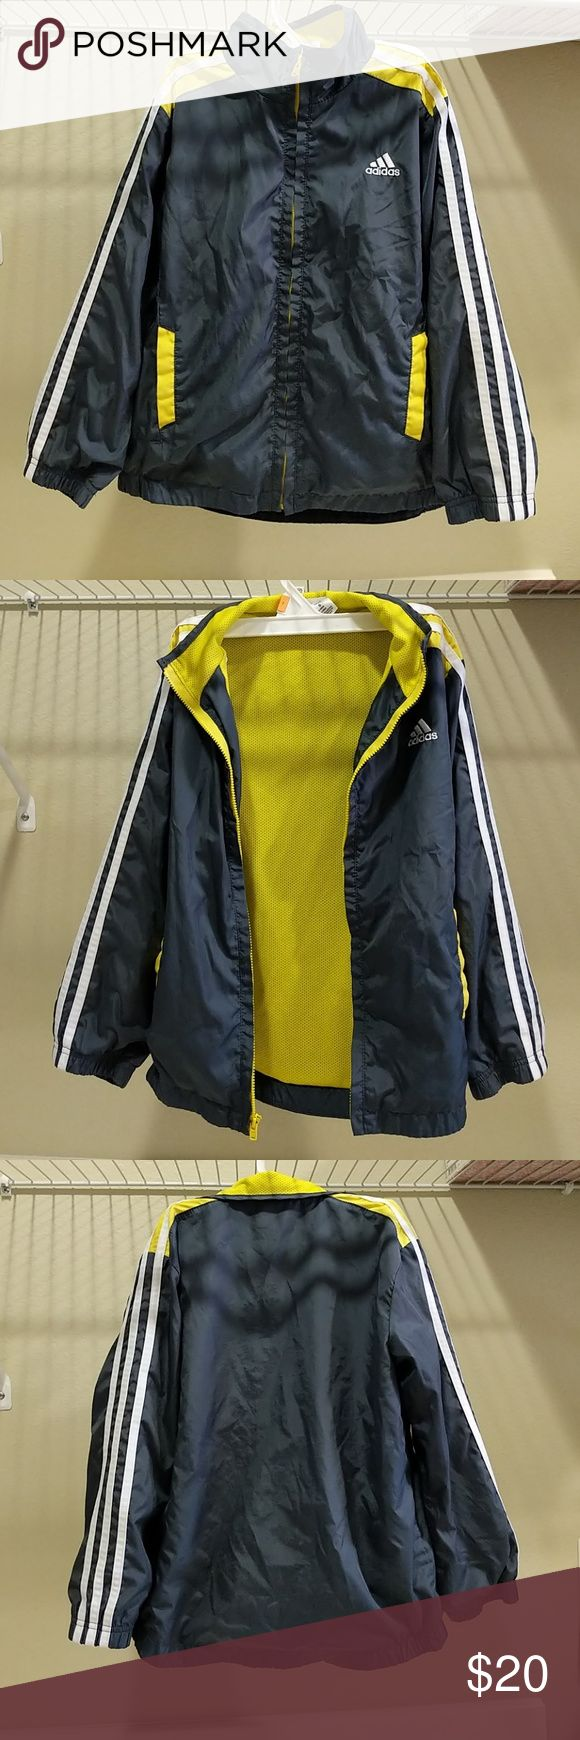 Adidas - Boy Windbreaker @tea_n_yoga at Poshmark  Adidas boy windbreaker. Good condition. Side pockets. Zipper works. No stain. adidas Jackets & Coats Raincoats